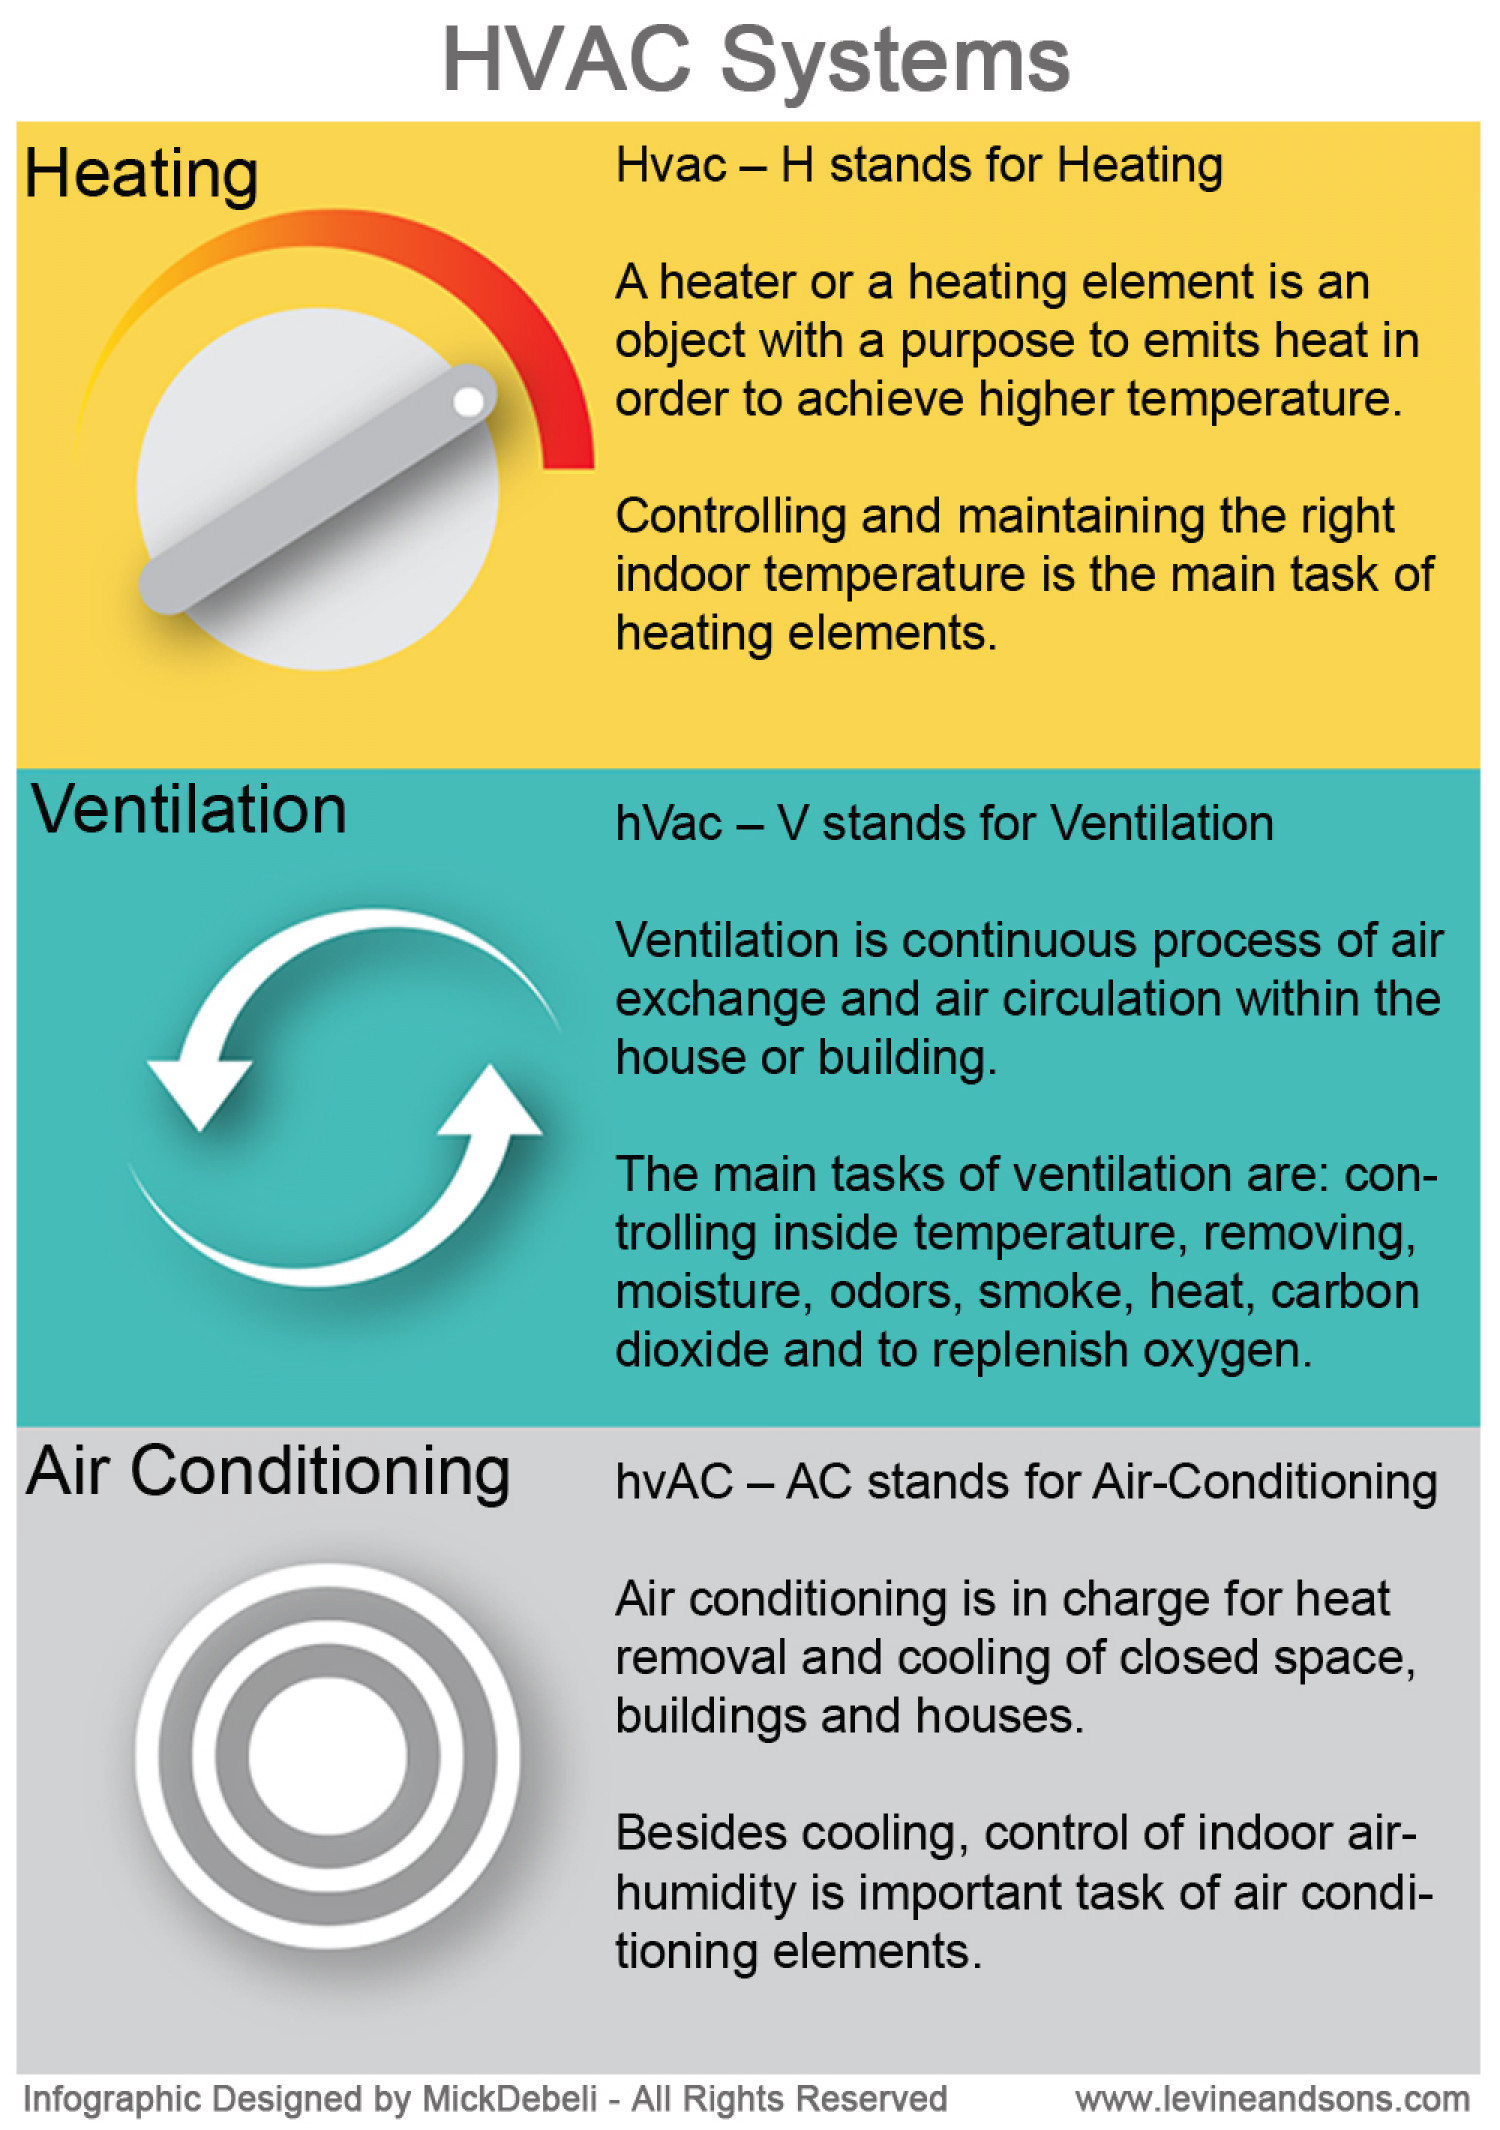 HVAC Systems Infographic